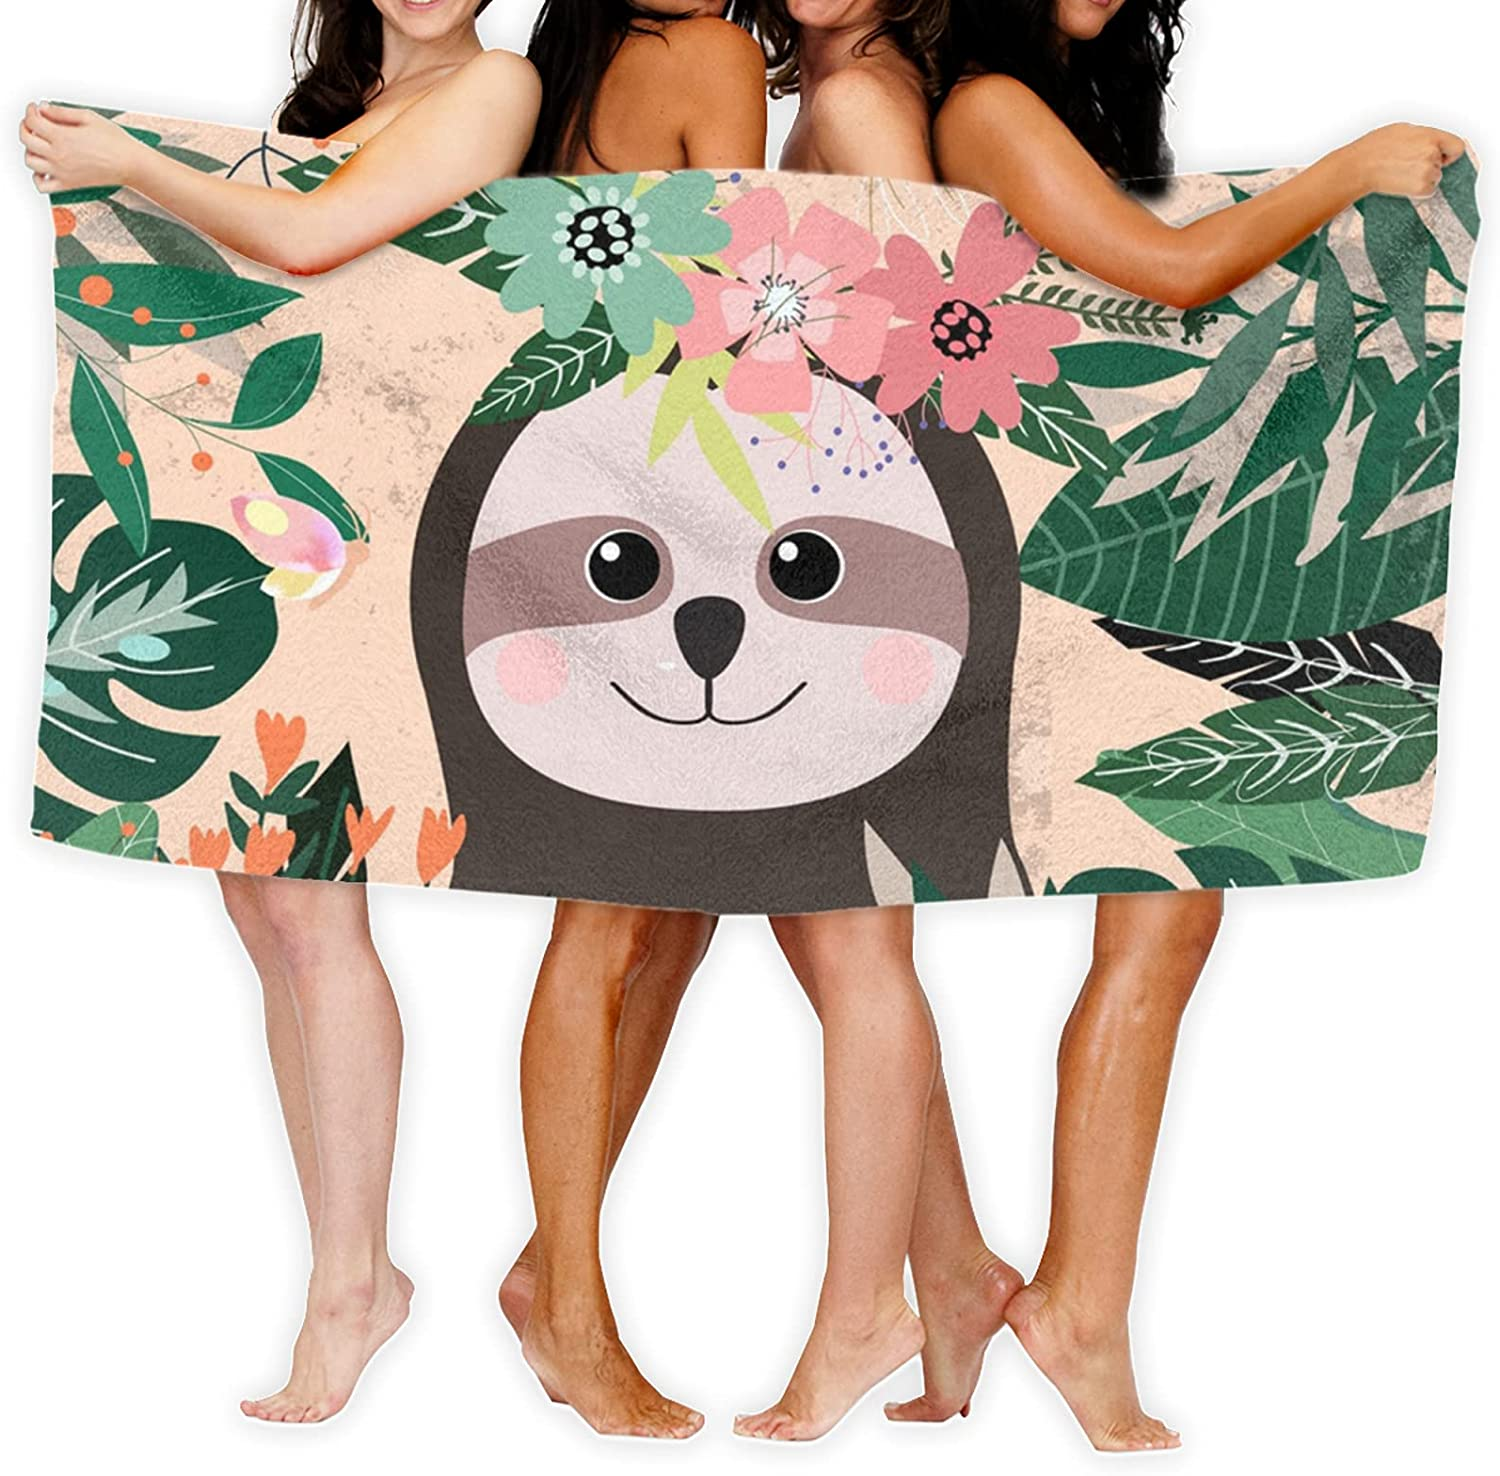 Sloth and Flowers Printed Bath Towel A of Unique Microfi El Paso New color Mall Made is